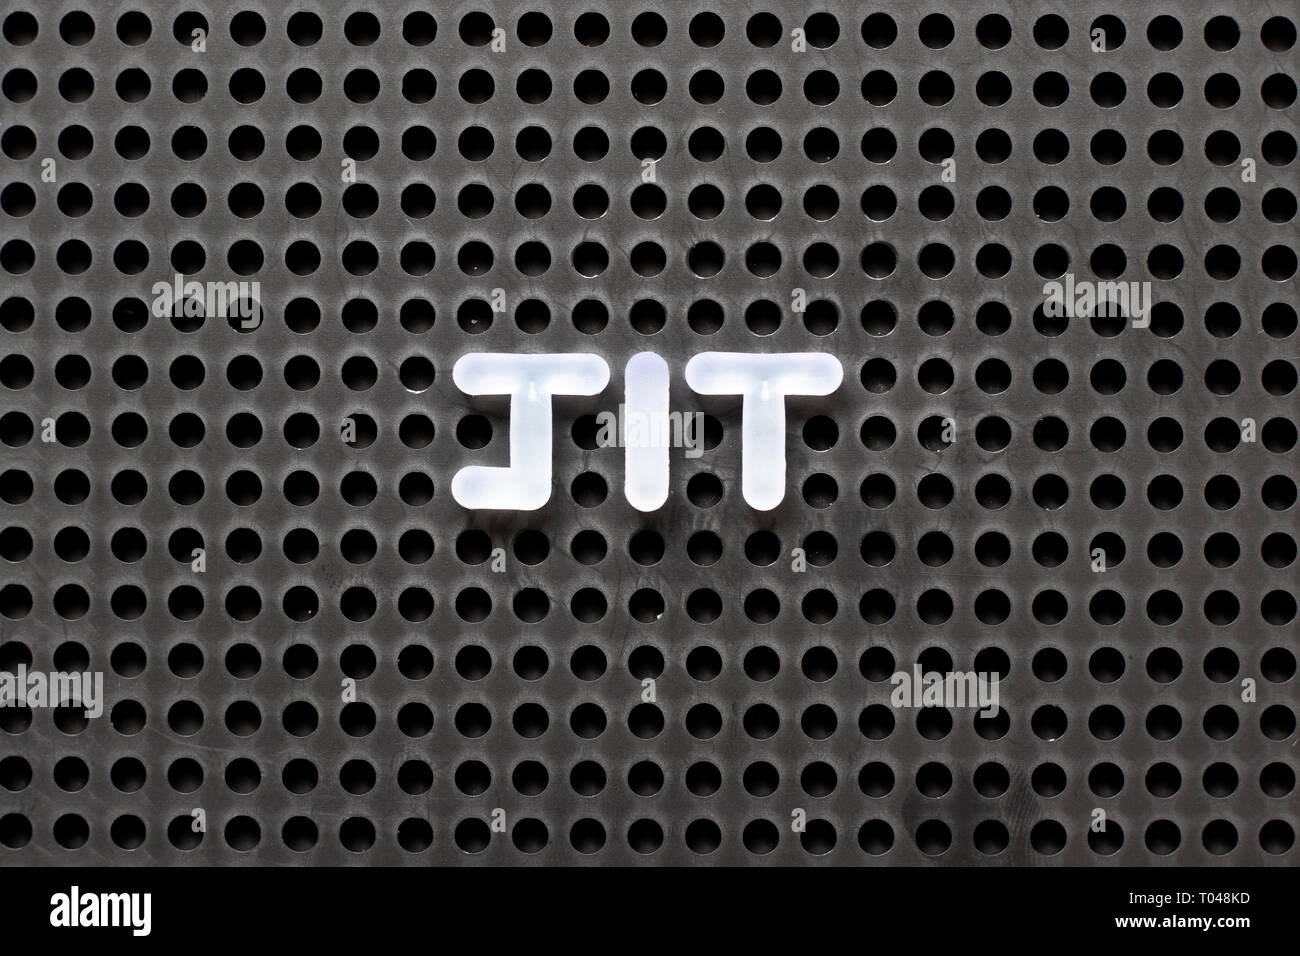 Black color pegboard with white letter in word JIT (abbreviation of just in time) - Stock Image